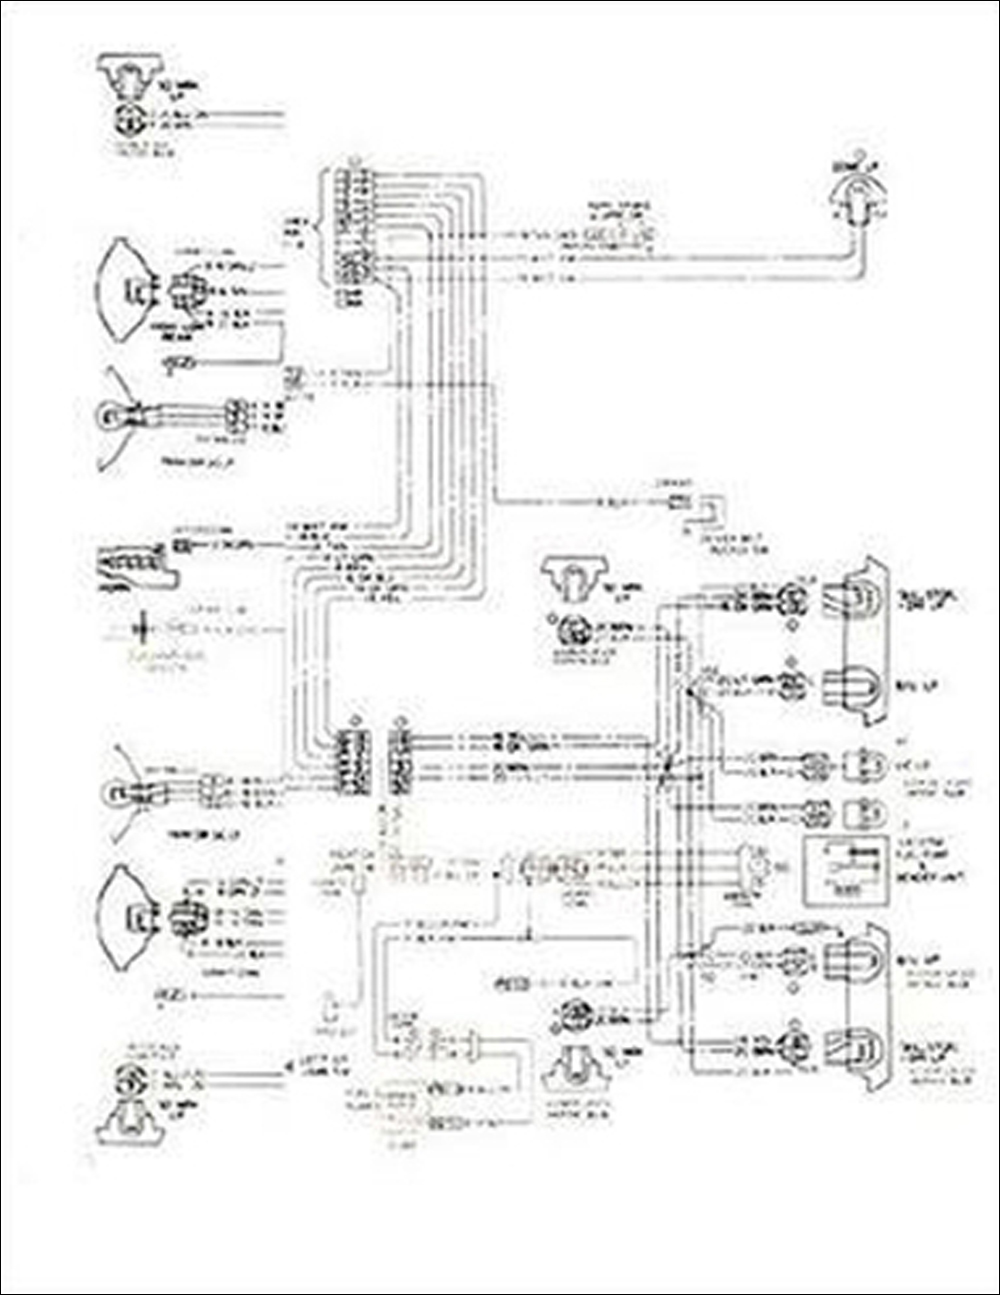 1976 Chevy Foldout Wiring Diagrams Original - Select your model from the  list